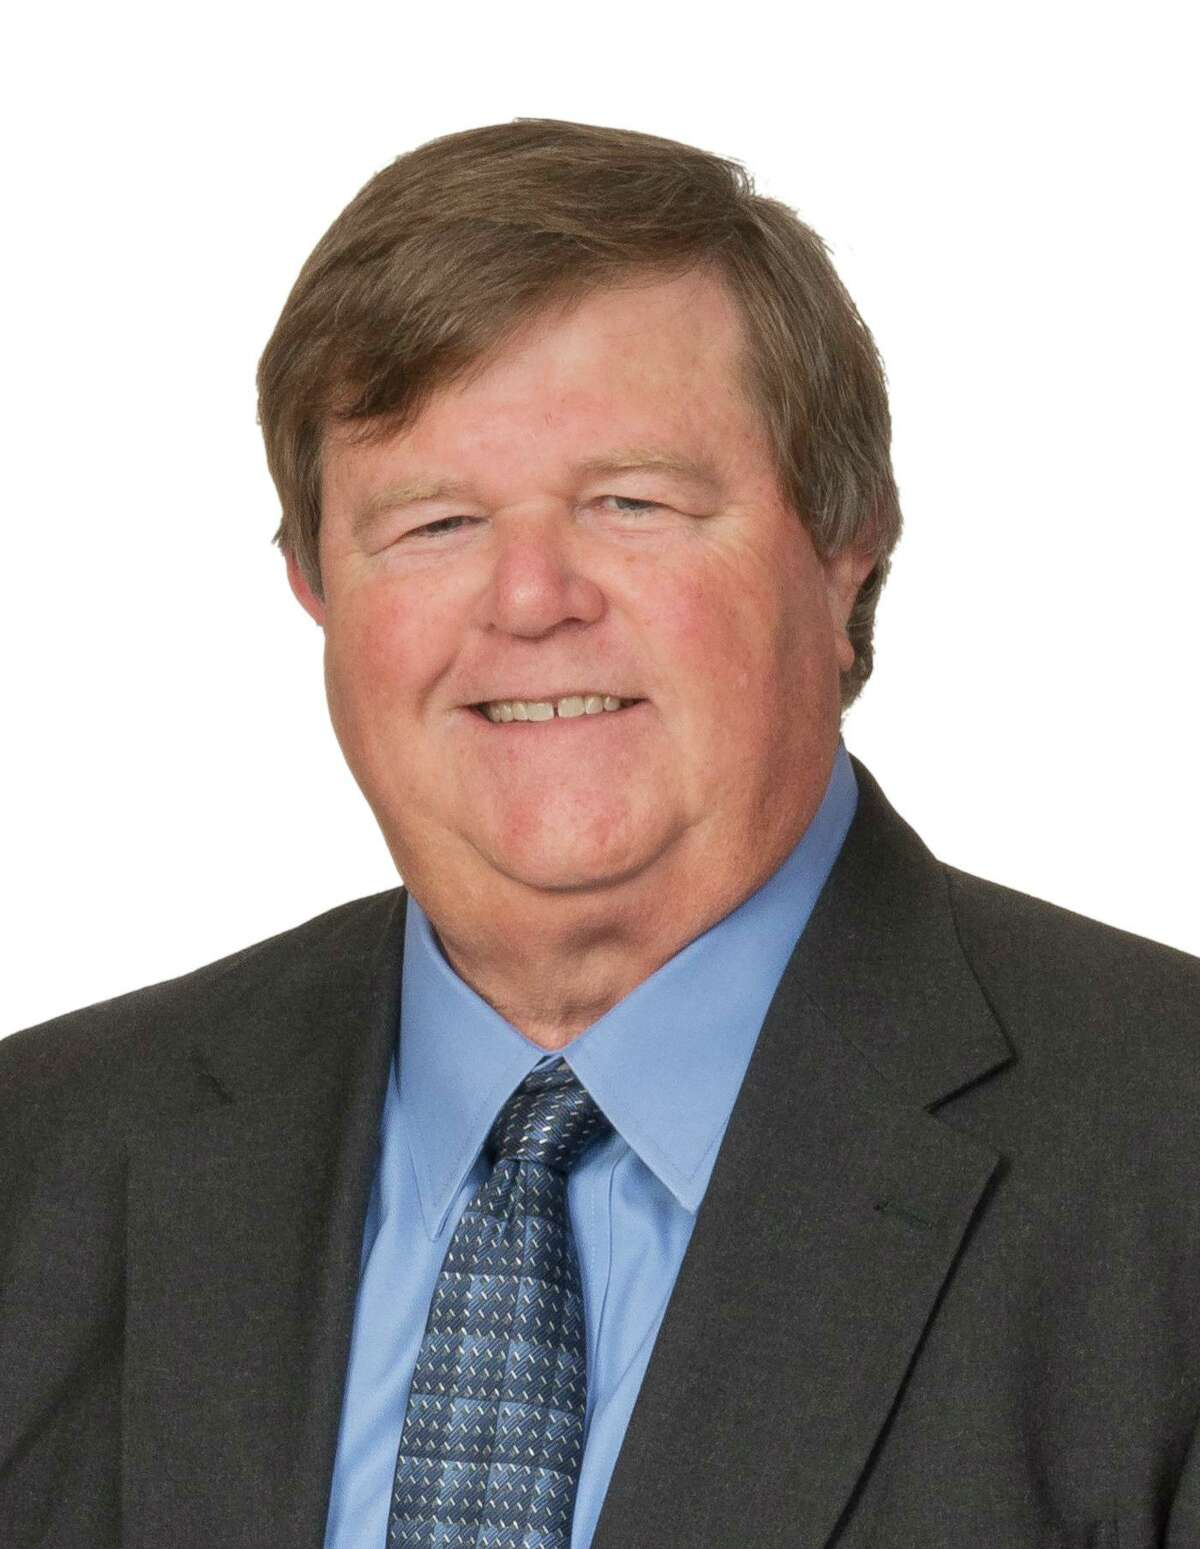 Calvin Ladner, the president and co-founder of LJA Engineering, died in August of COVID-19 complications. He was 62.